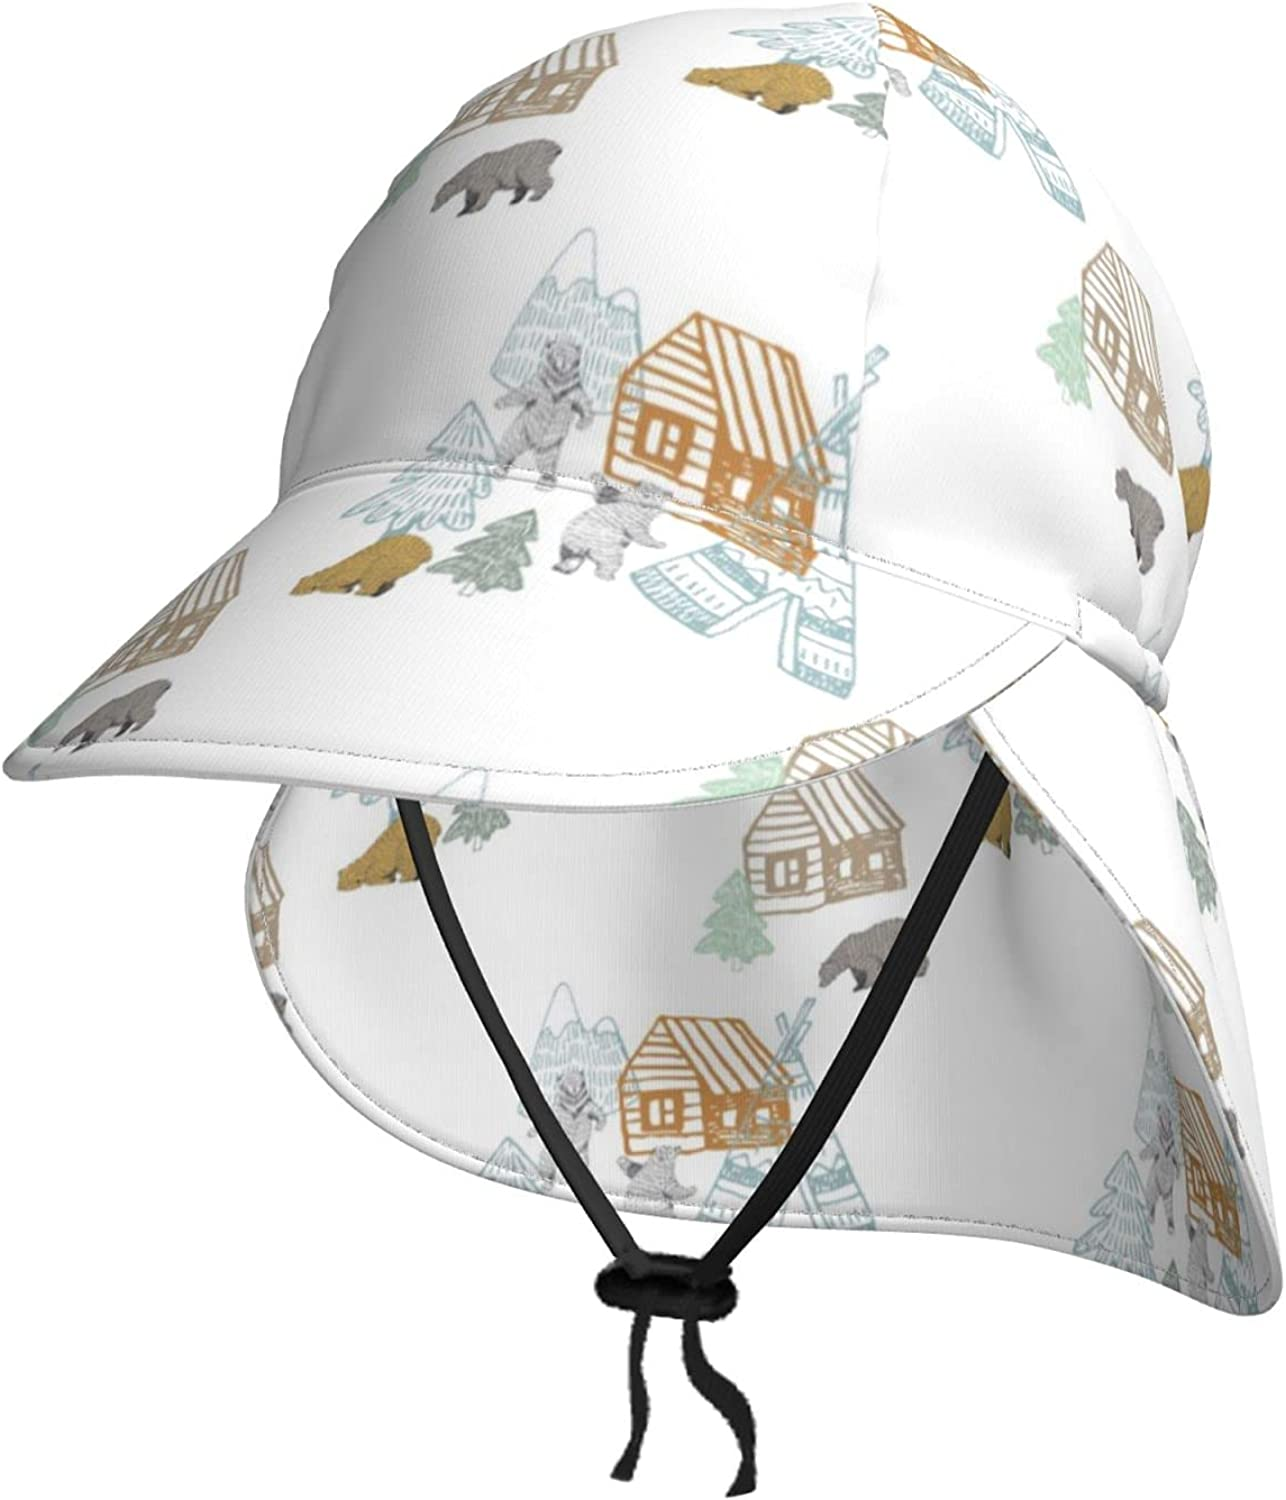 Lodge Oklahoma City Mall Bear Tree Kids Sun Hat Neck Breat Summer with New products world's highest quality popular Flap